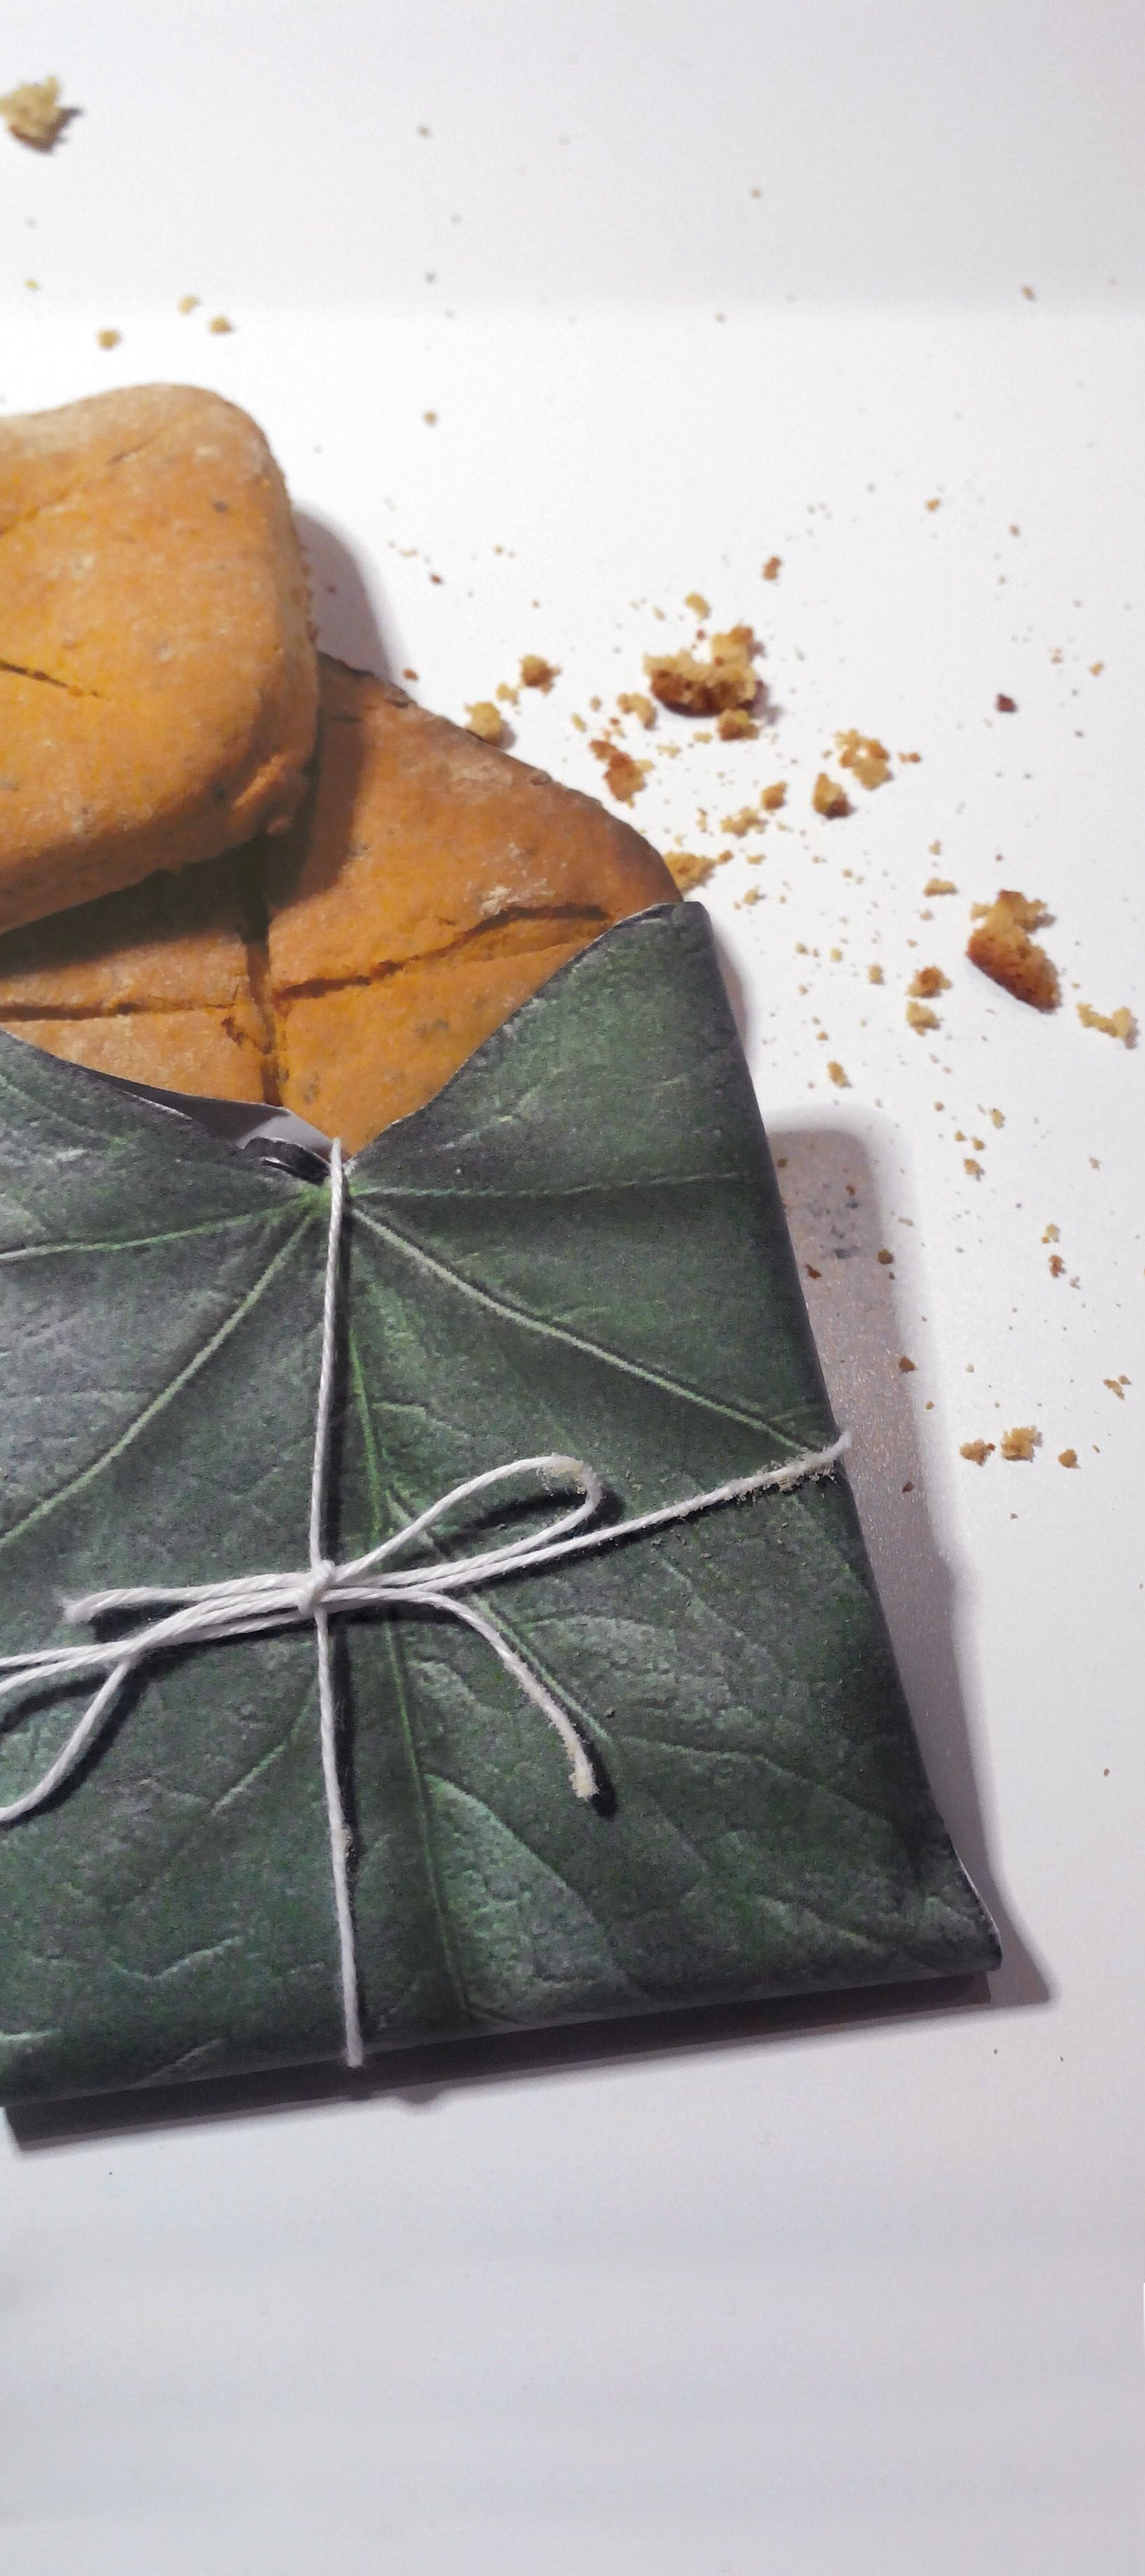 Hey, check out my recipe lembas. A wonderful elven bread so delicious!